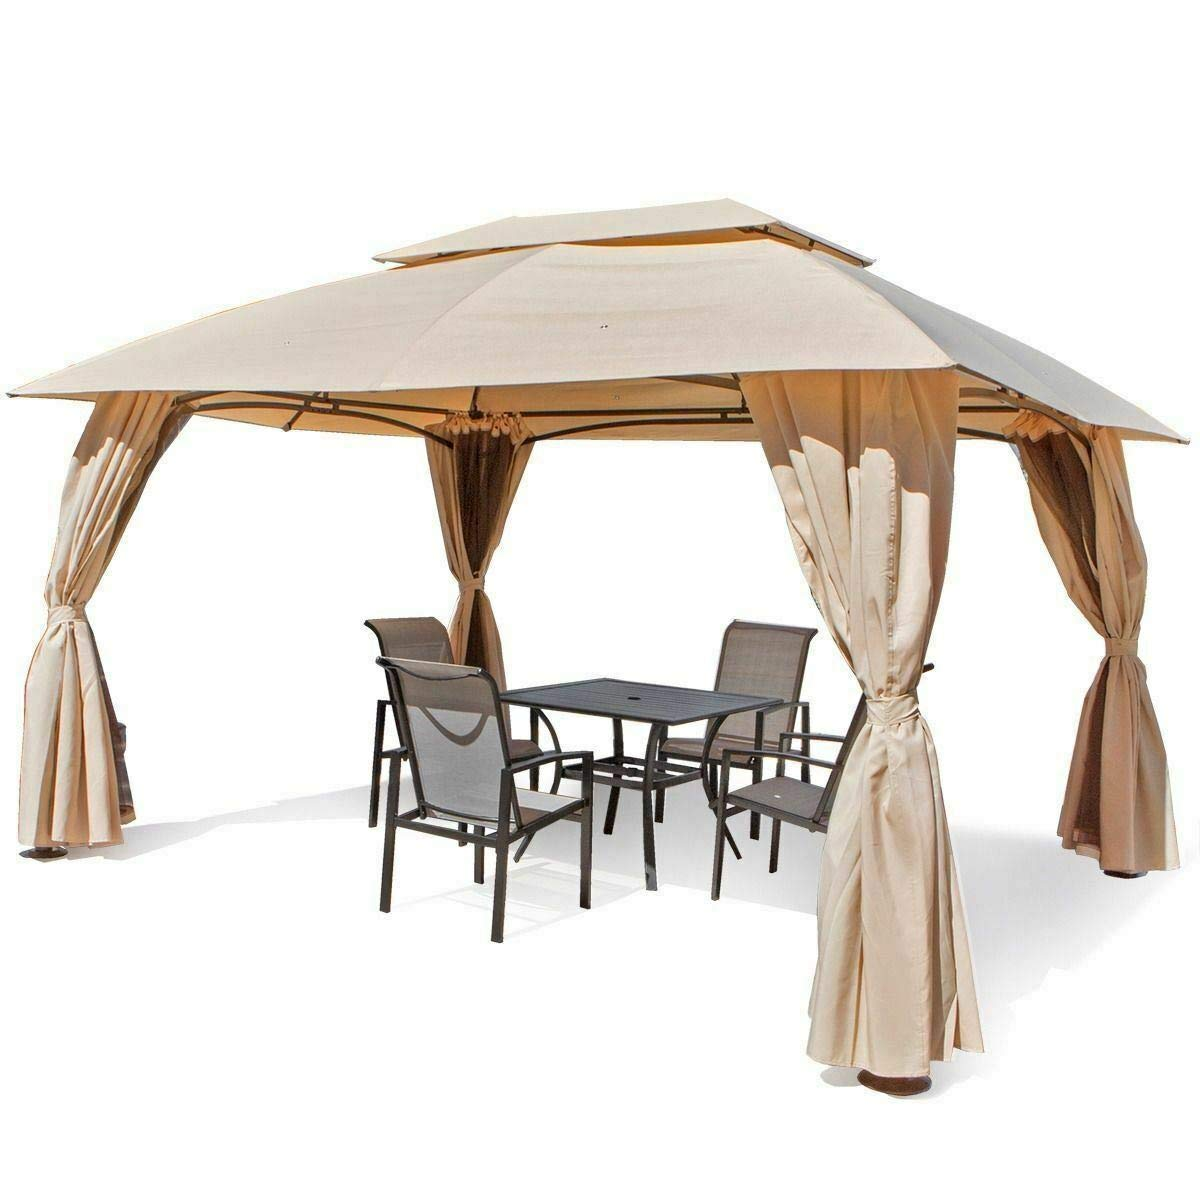 Elegant Design, Add A Bold Impact To Your Favorite Outdoor Area Outdoor Home 10′ X 10′ Backyard Garden Awnings Patio Gazebo Canopy Tent Netting 2 Tiers Awning Shelter Mosquito Net, Coffee